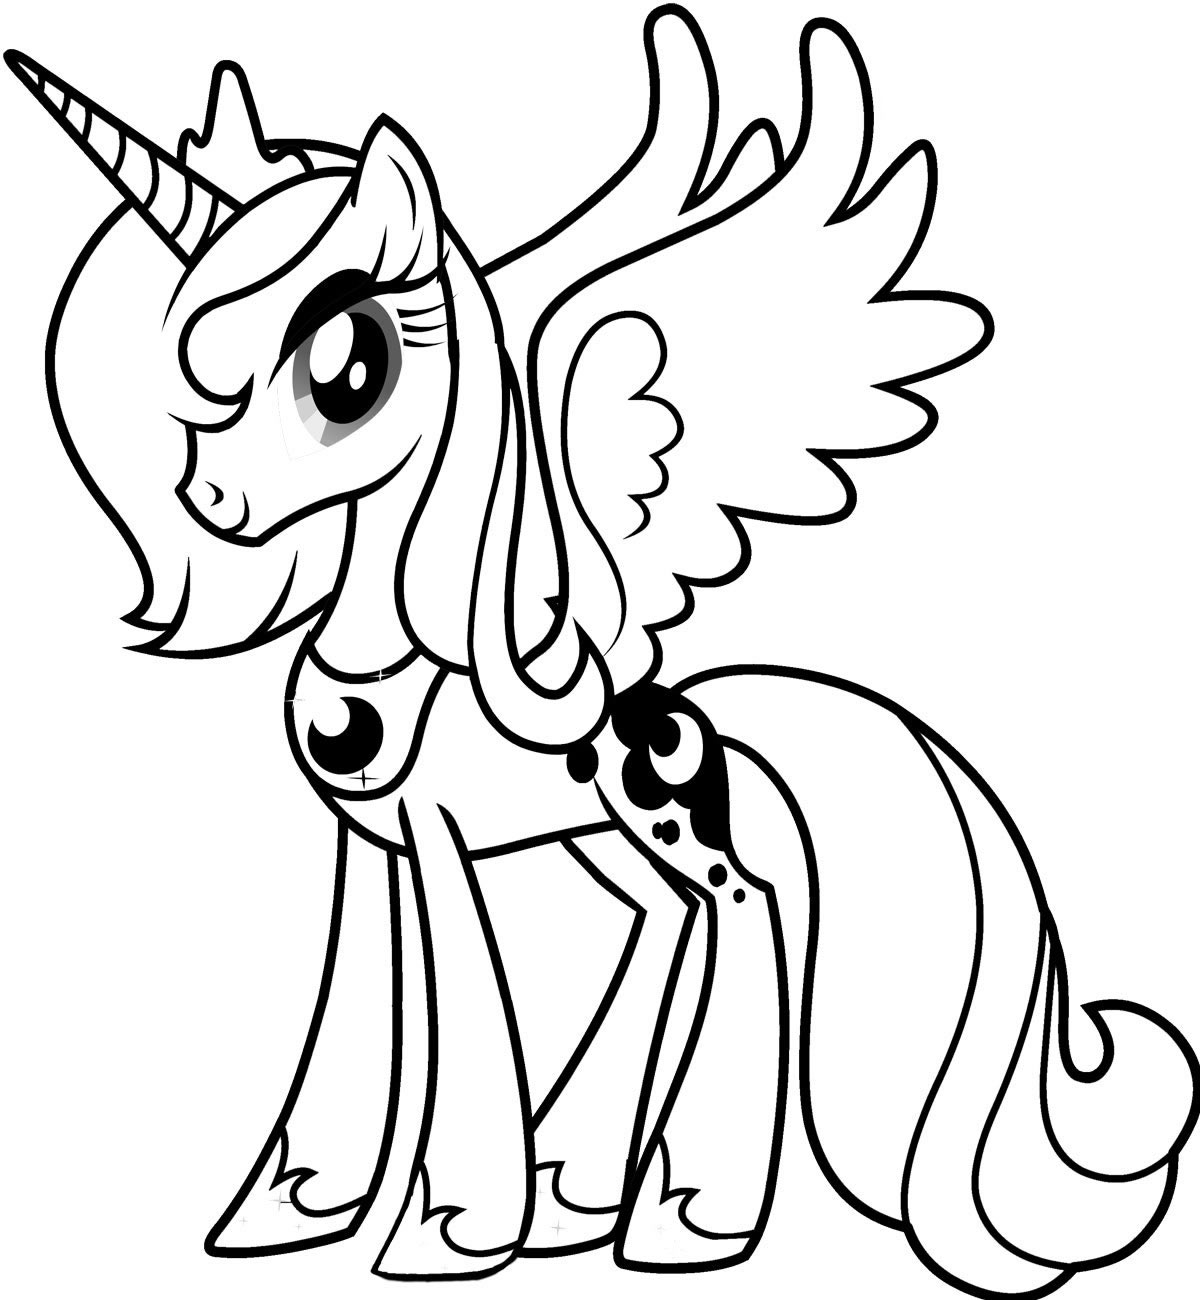 My Little Pony Coloring Pages additionally My Little Pony Coloring Pages additionally Princess Luna And Nightmare Moon Coloring Pages Sketch Templates further My Little Pony Sweetie Belle together with My Little Pony Coloring Pages Friendship Is Magic Luna. on nightmare moon ponyville